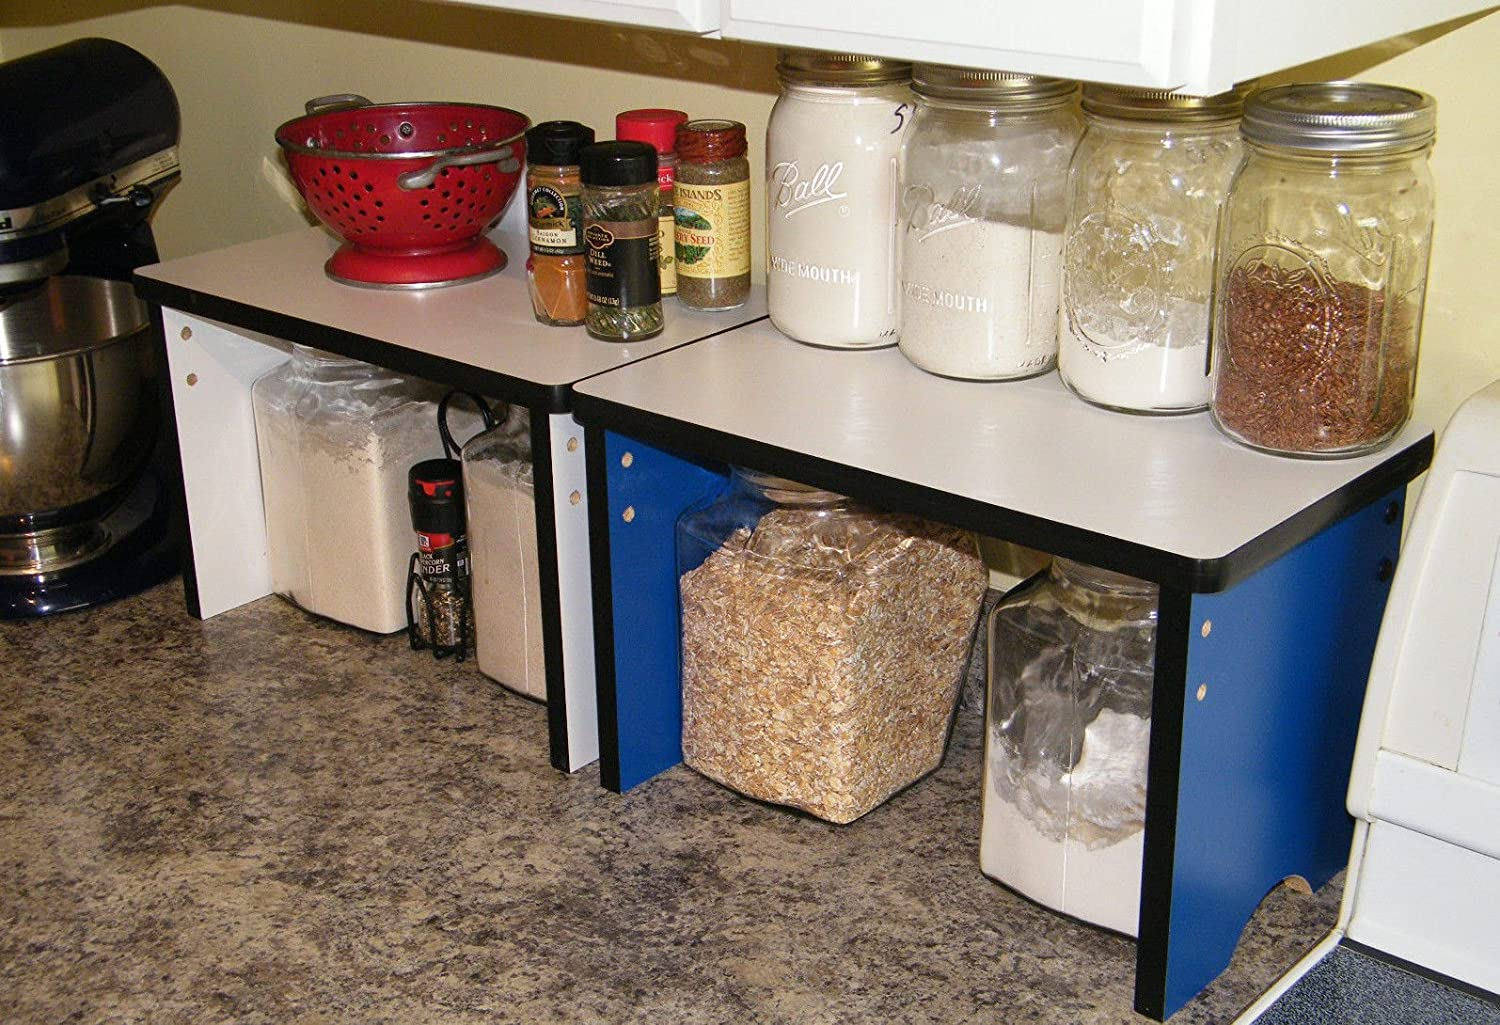 Amazon.com: Kitchen Countertop Small Shelf Space Saver Organizer    Stackable: Kitchen U0026 Dining